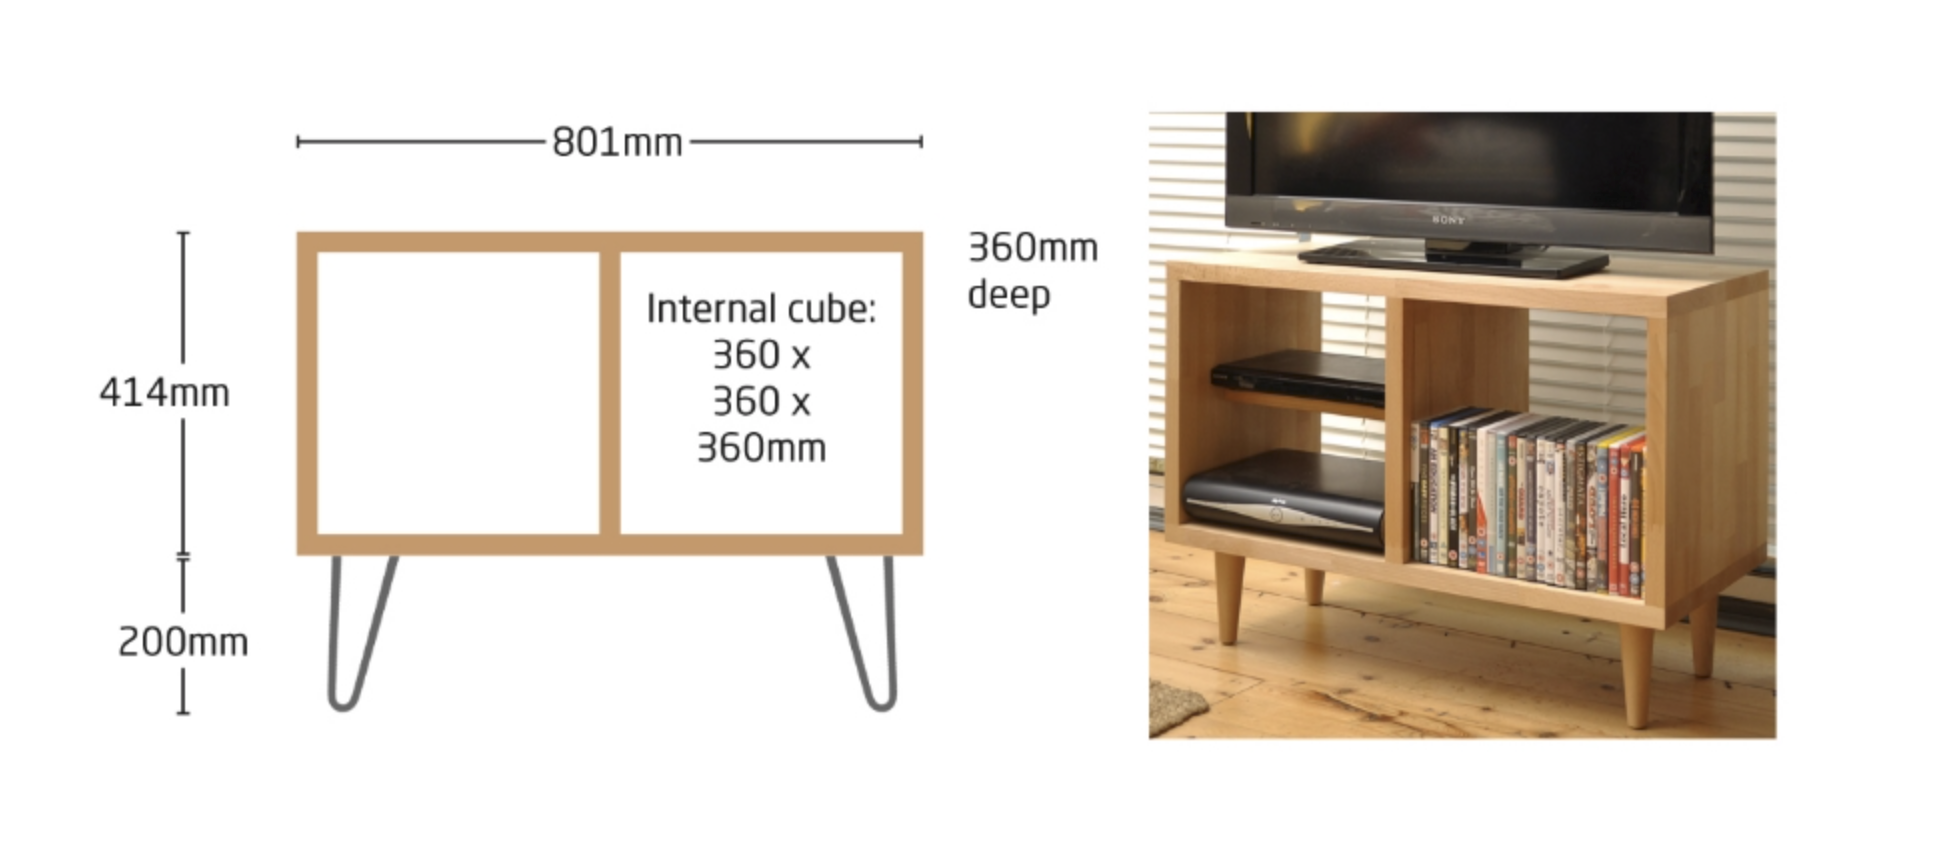 Cubed 'Duo'. Price in solid beech with hairpin legs £395.